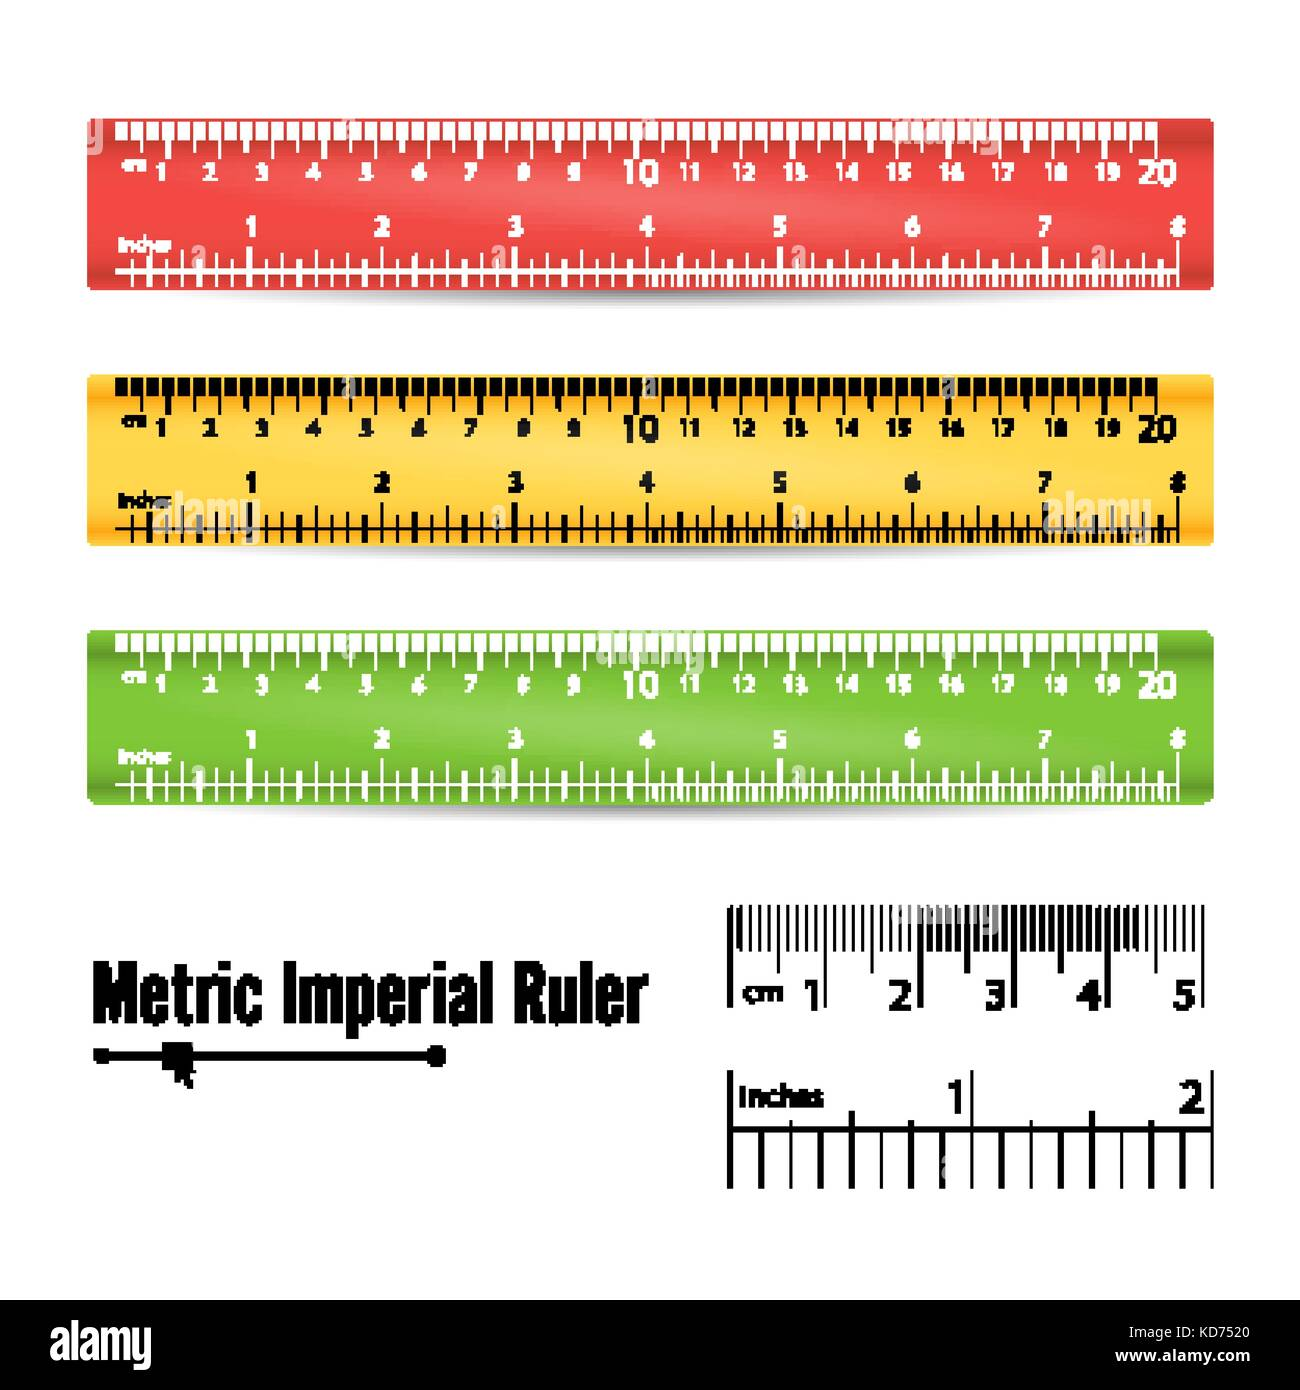 School Measuring Ruler Vector. Measure Tool. Millimeters, Centimeters And Inches Scale. Isolated Illustration - Stock Vector